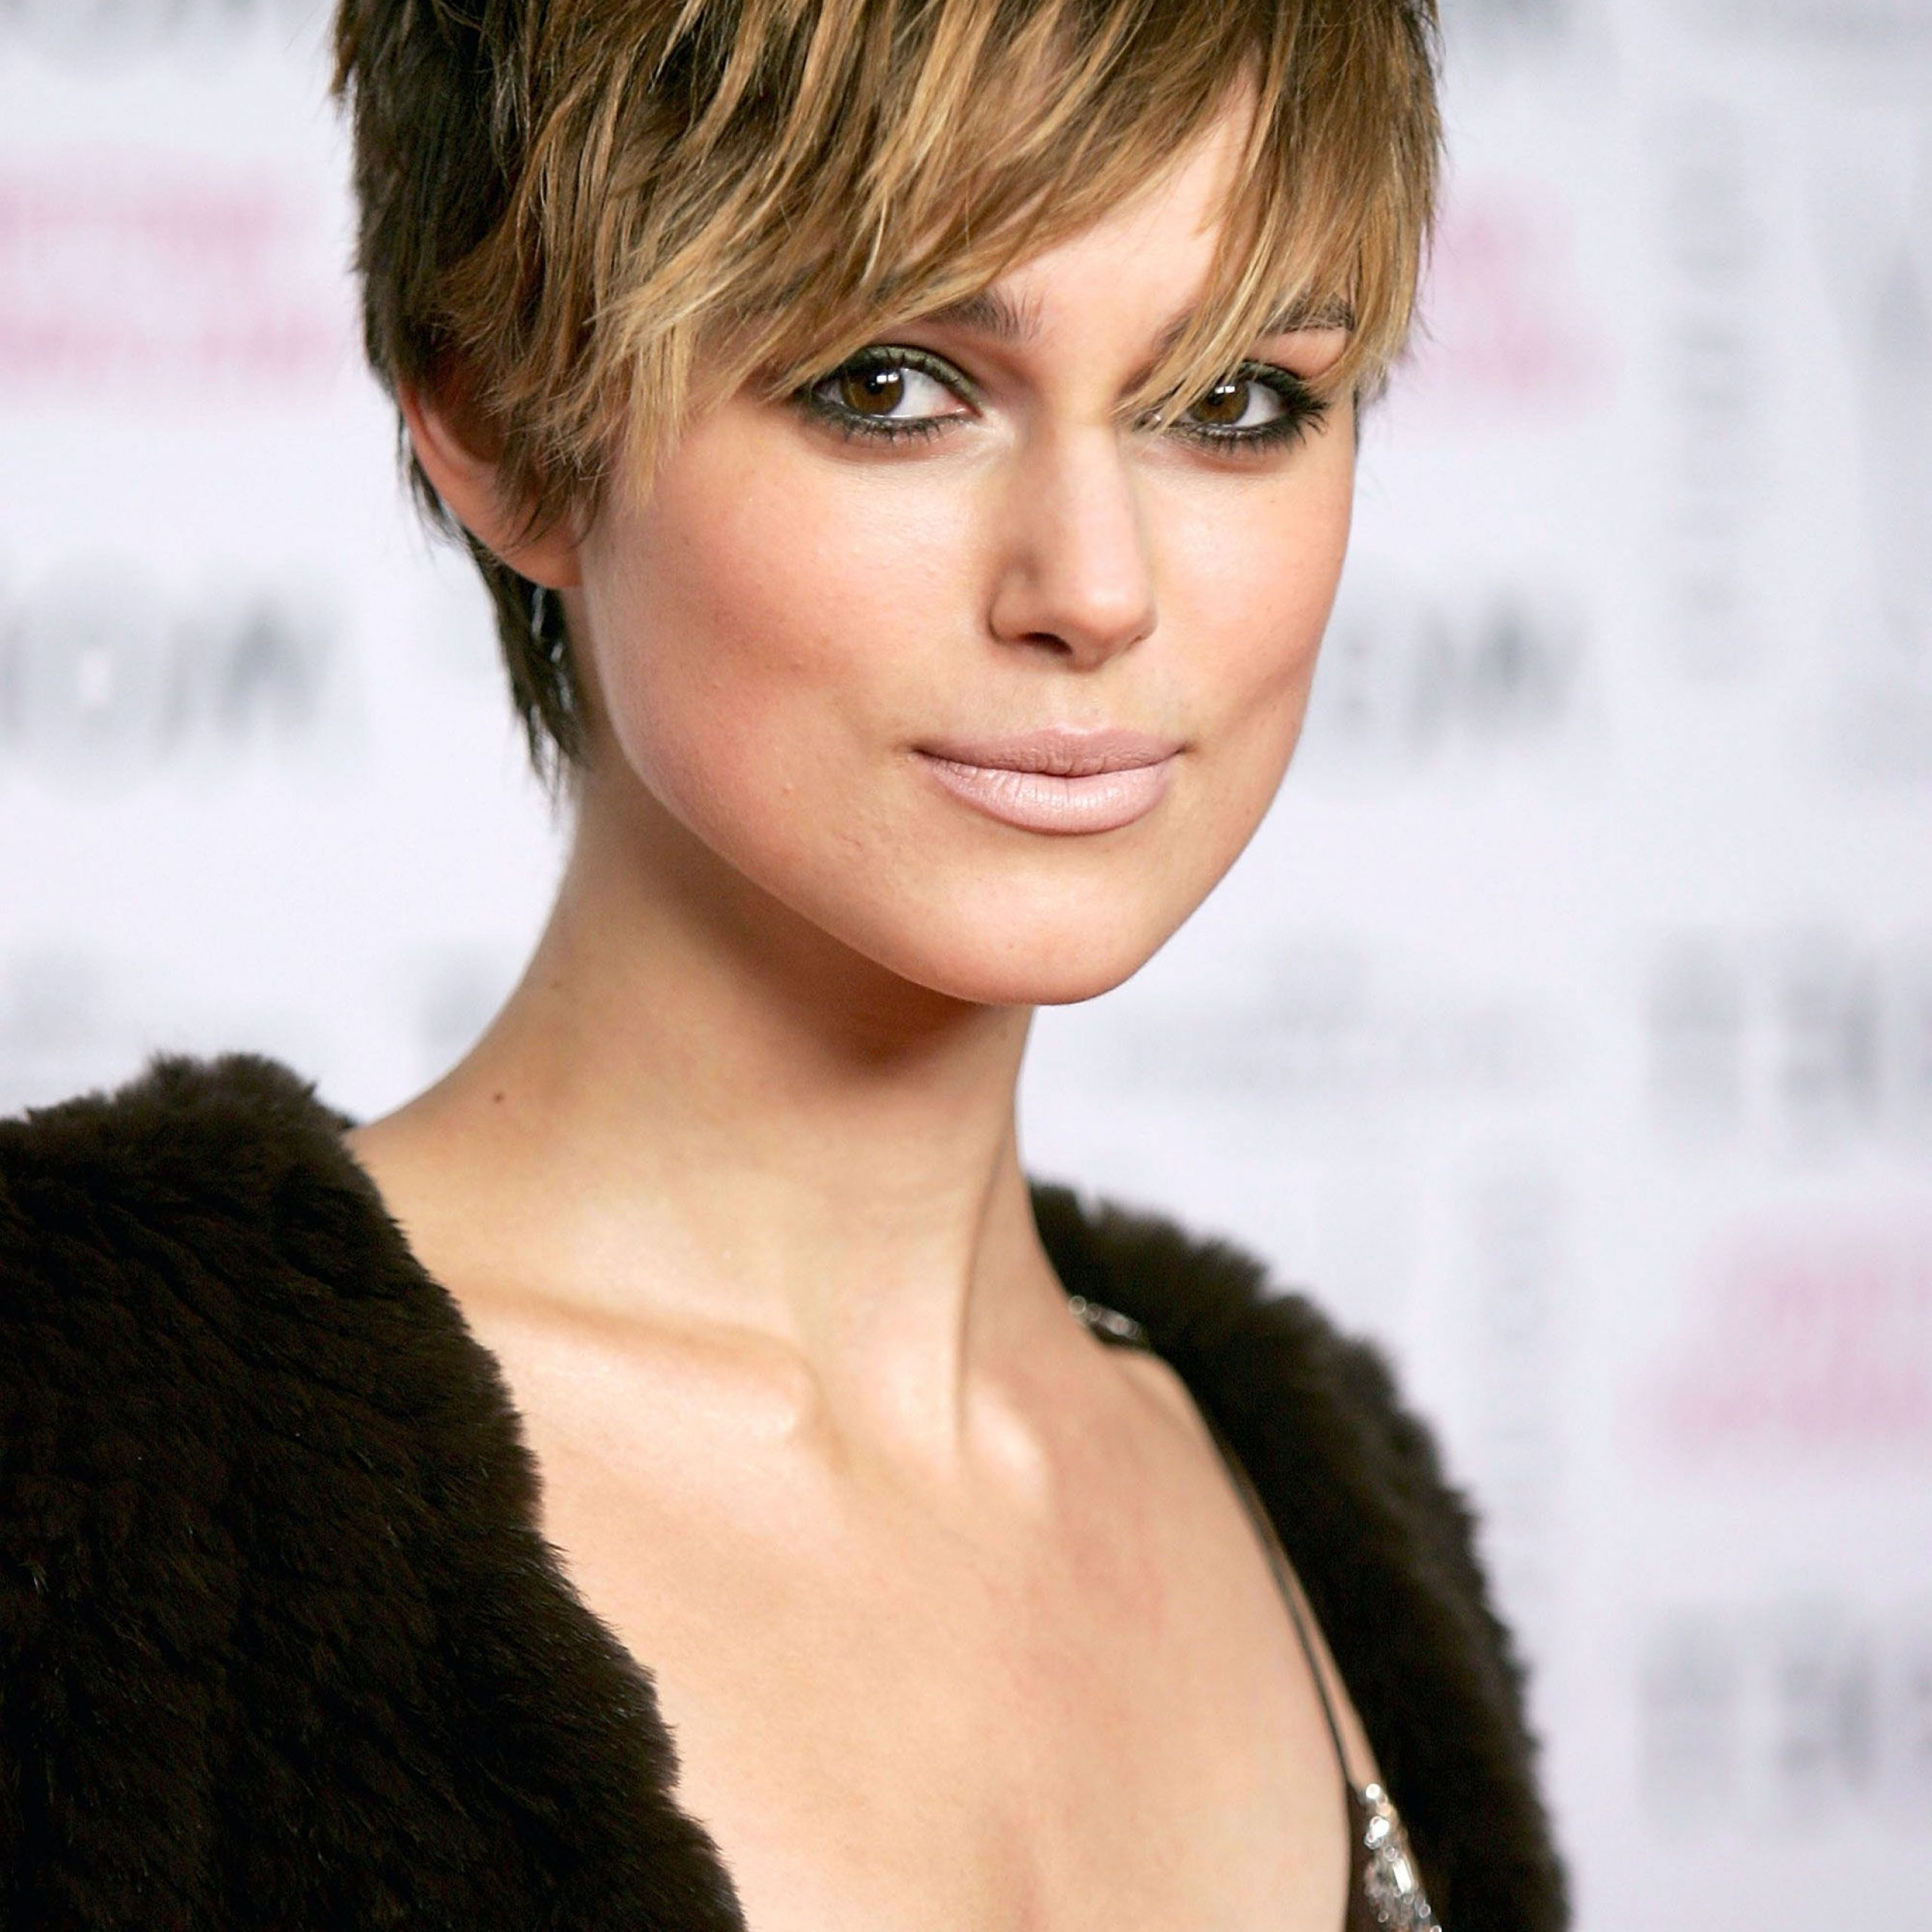 60+ Pixie Cuts We Love For 2020 – Short Pixie Hairstyles With Trendy Pixie Haircuts With Wispy Bangs (View 11 of 20)